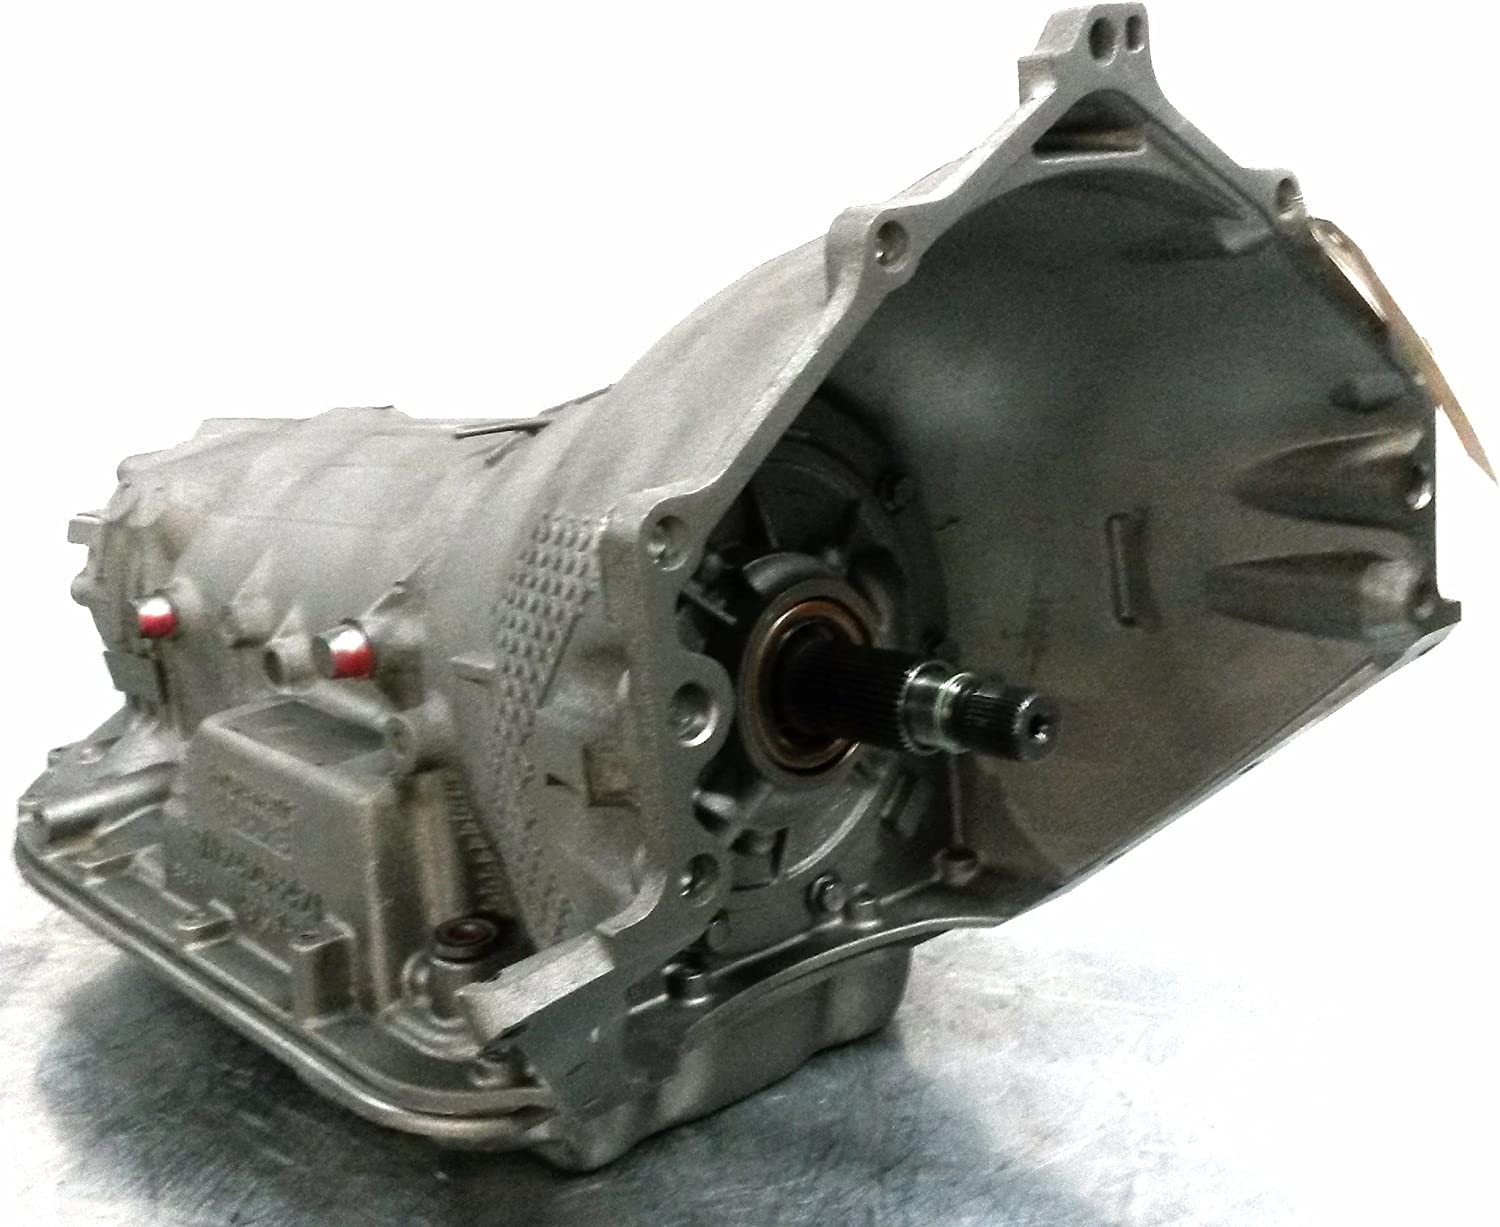 Shift Rite Transmissions replacement for 4L80E 1999-2009 2WD TRANSMISSION 5.7L 6.0L 6.5L 7.4L 8.1L Shift Rite 4L80E